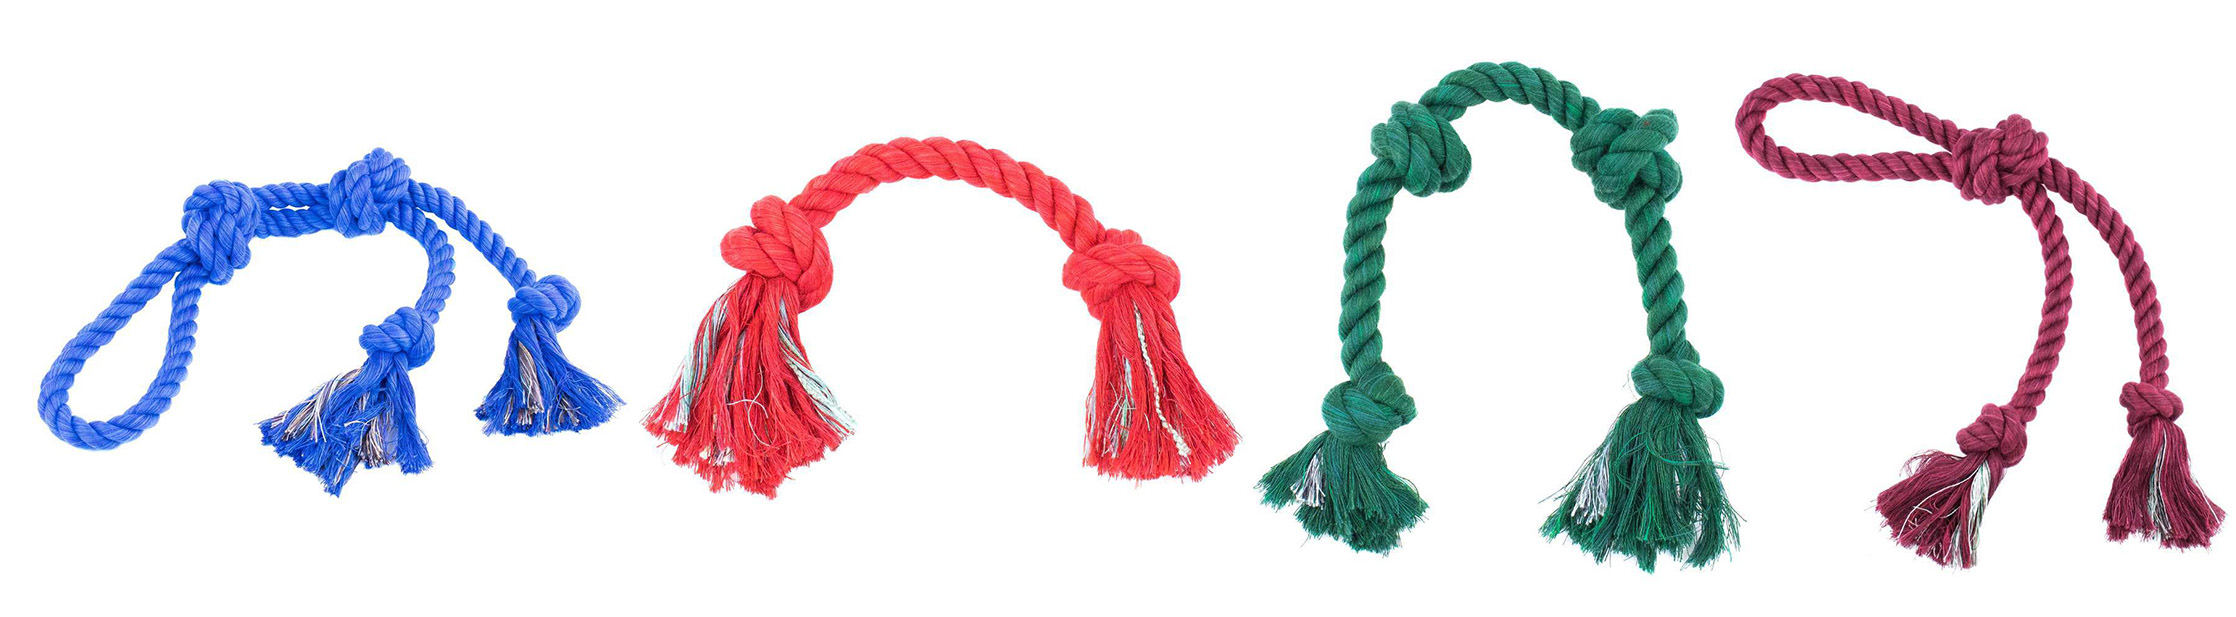 Knotted Rope Tug Toy for Pets